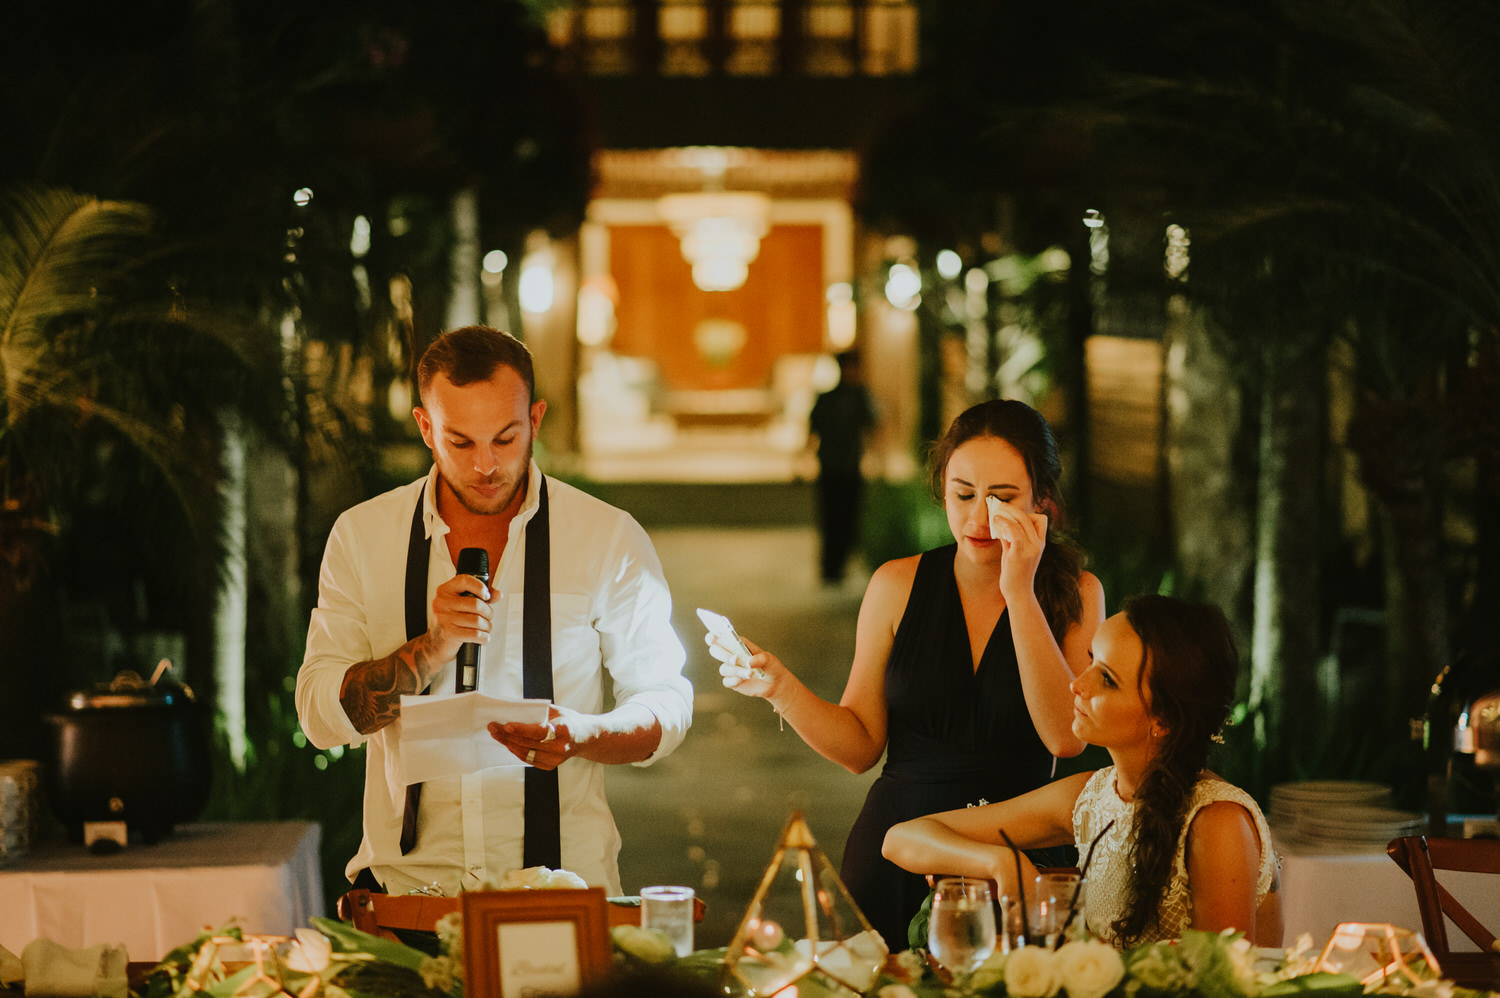 bali wedding destination - the ungasan wedding - bali wedding photographer - diktatphotography - aimee + blake wedding - 138